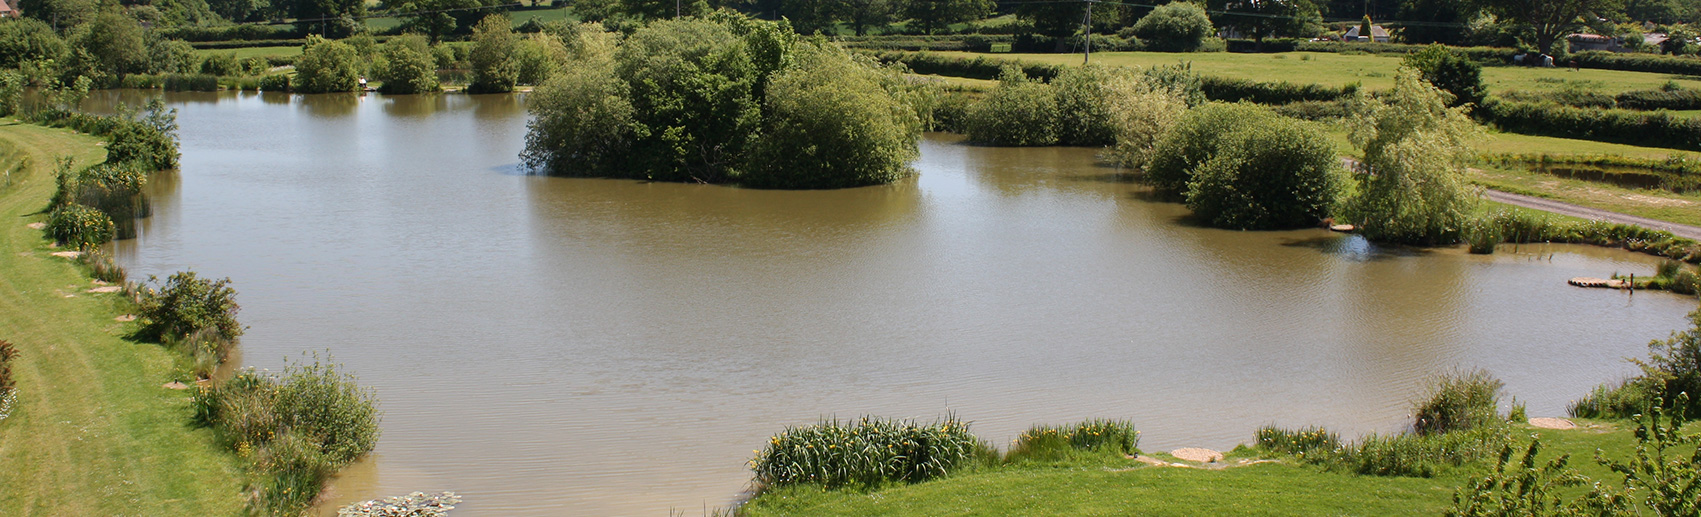 centre fishing lake - newdigate farms estate